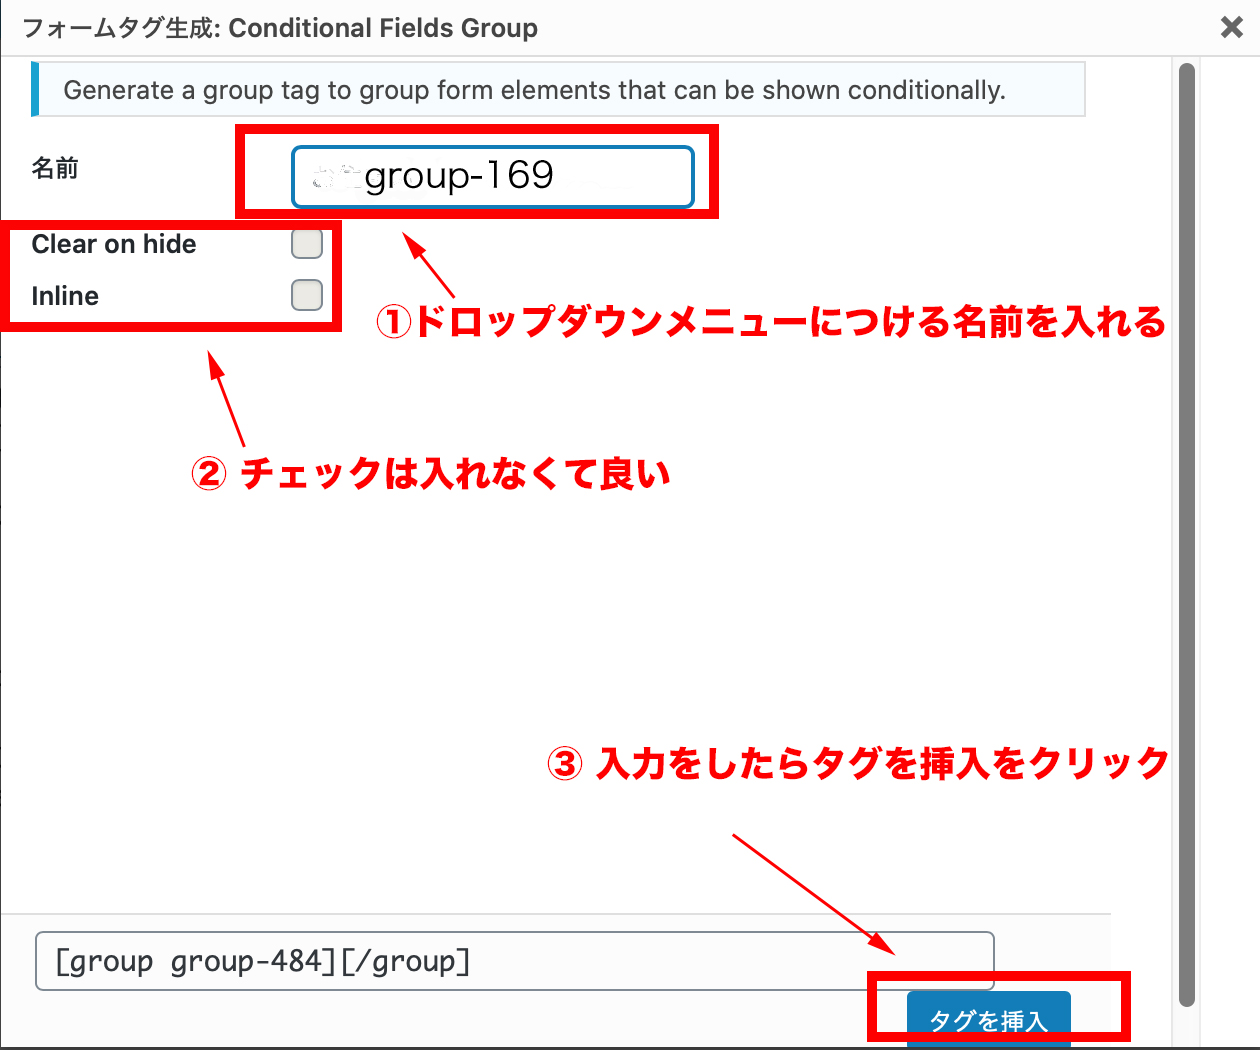 Conditional fields Group